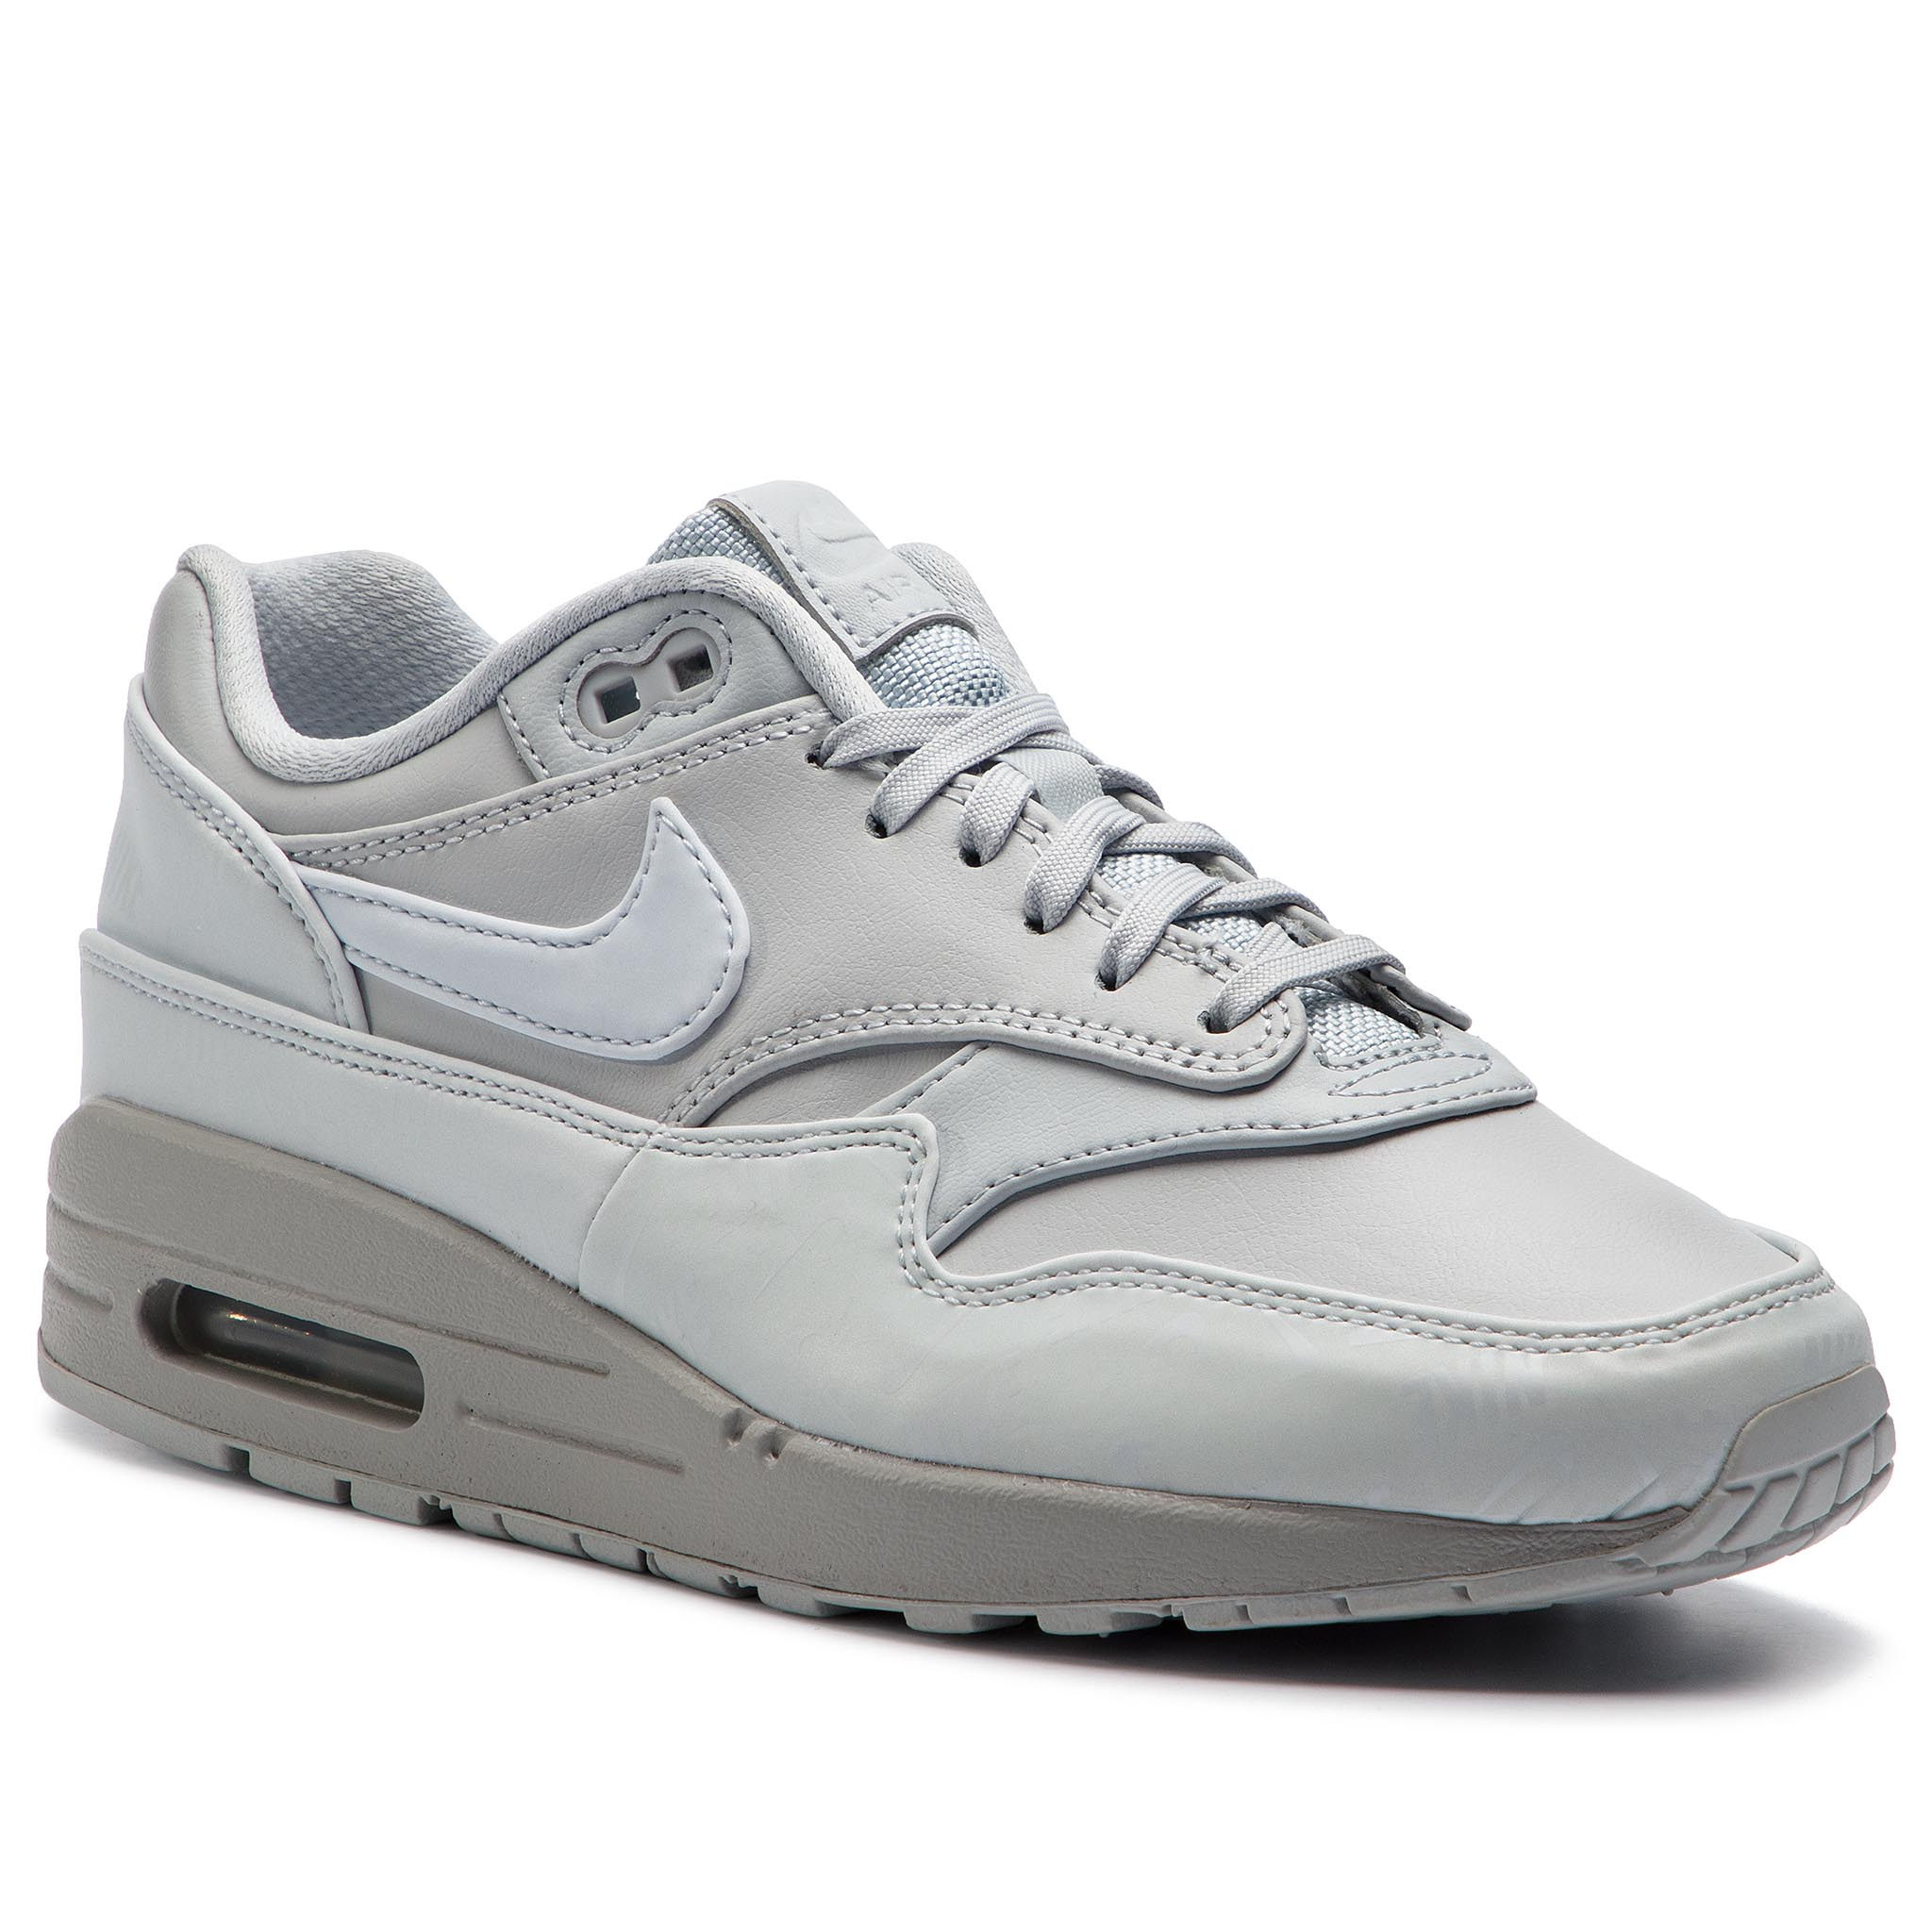 Pantofi NIKE - Air Max 1 Lx 917691 002 Pure Platinum/Pure Platinum